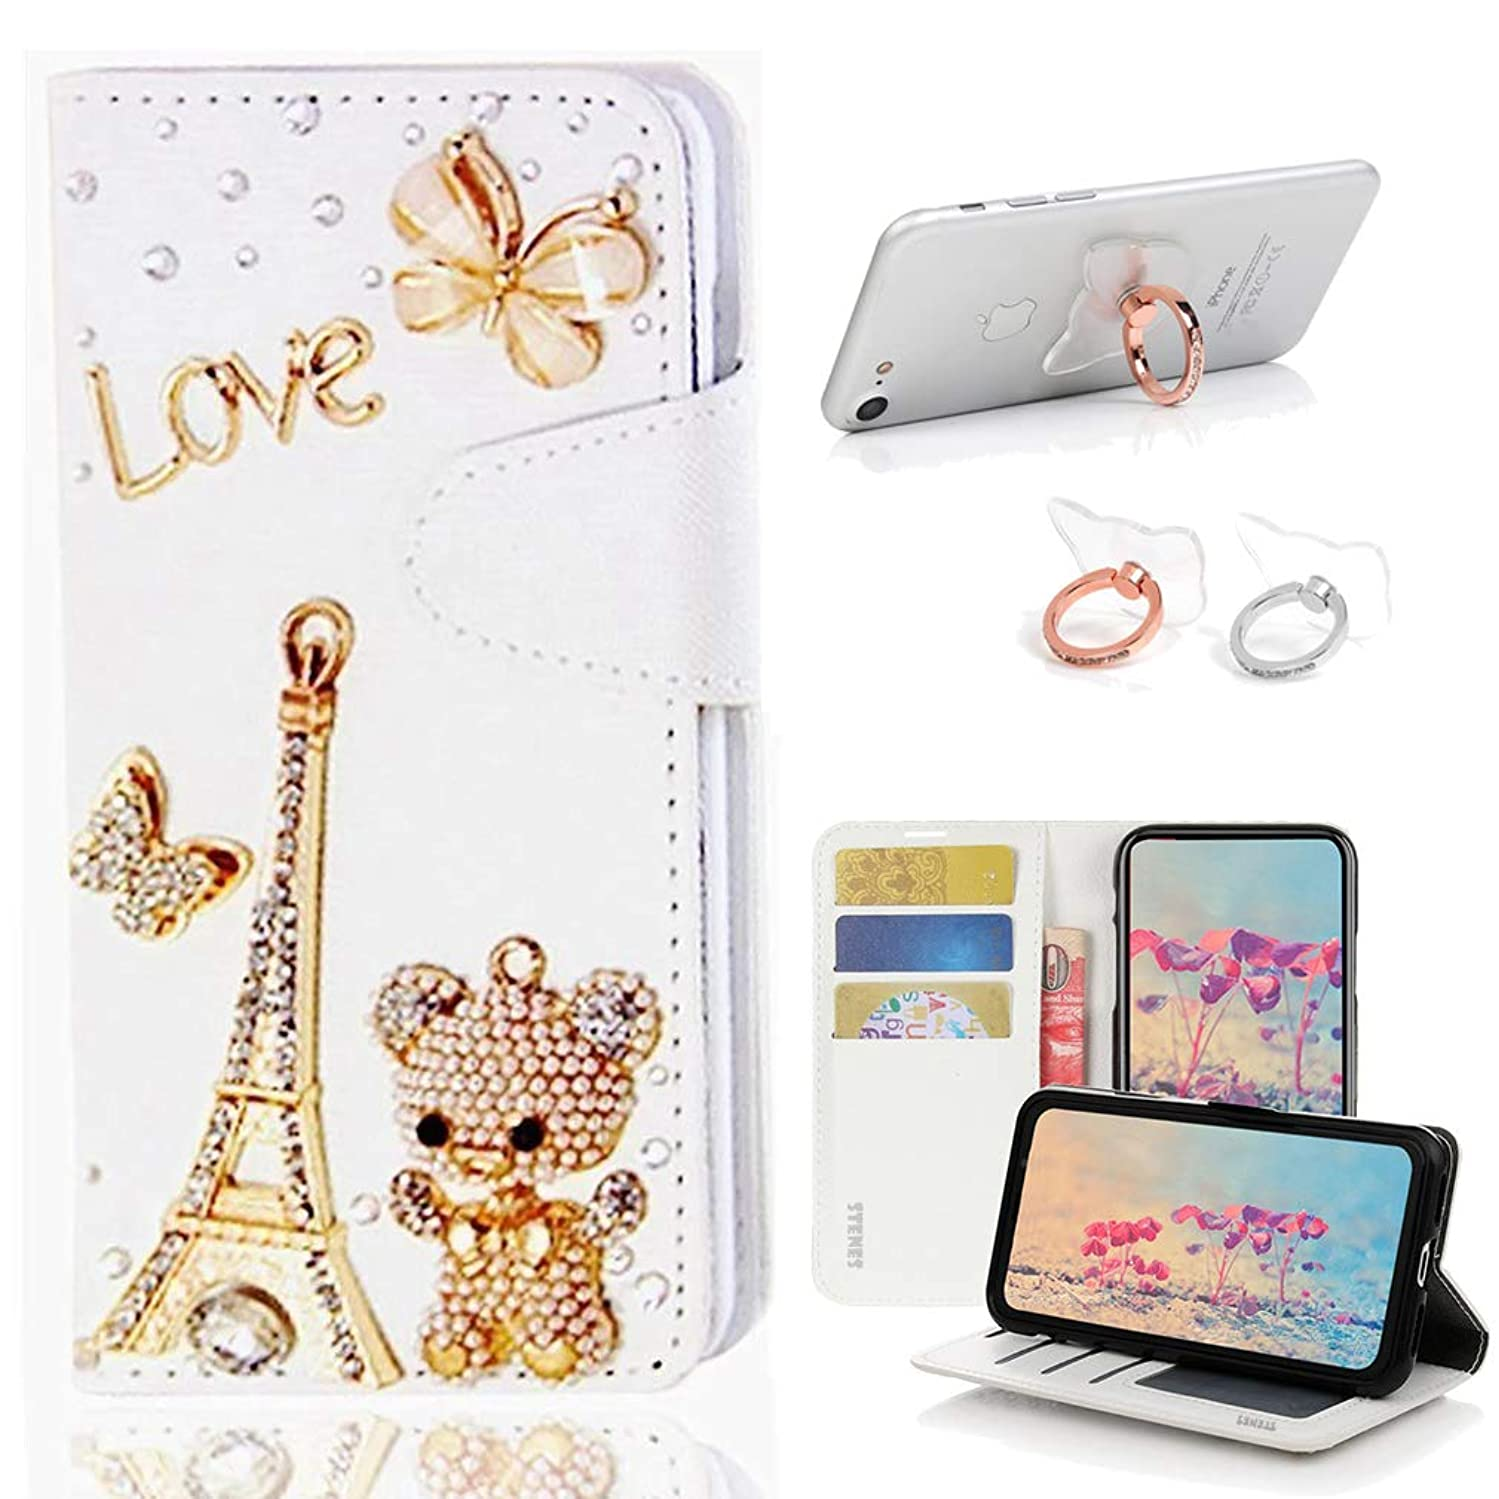 STENES Bling Wallet Case Compatible with Motorola Moto G5S - Stylish - 3D Handmade Eiffel Tower Bear Butterfly Leather Cover with Ring Stand Holder [2 Pack] - Gold